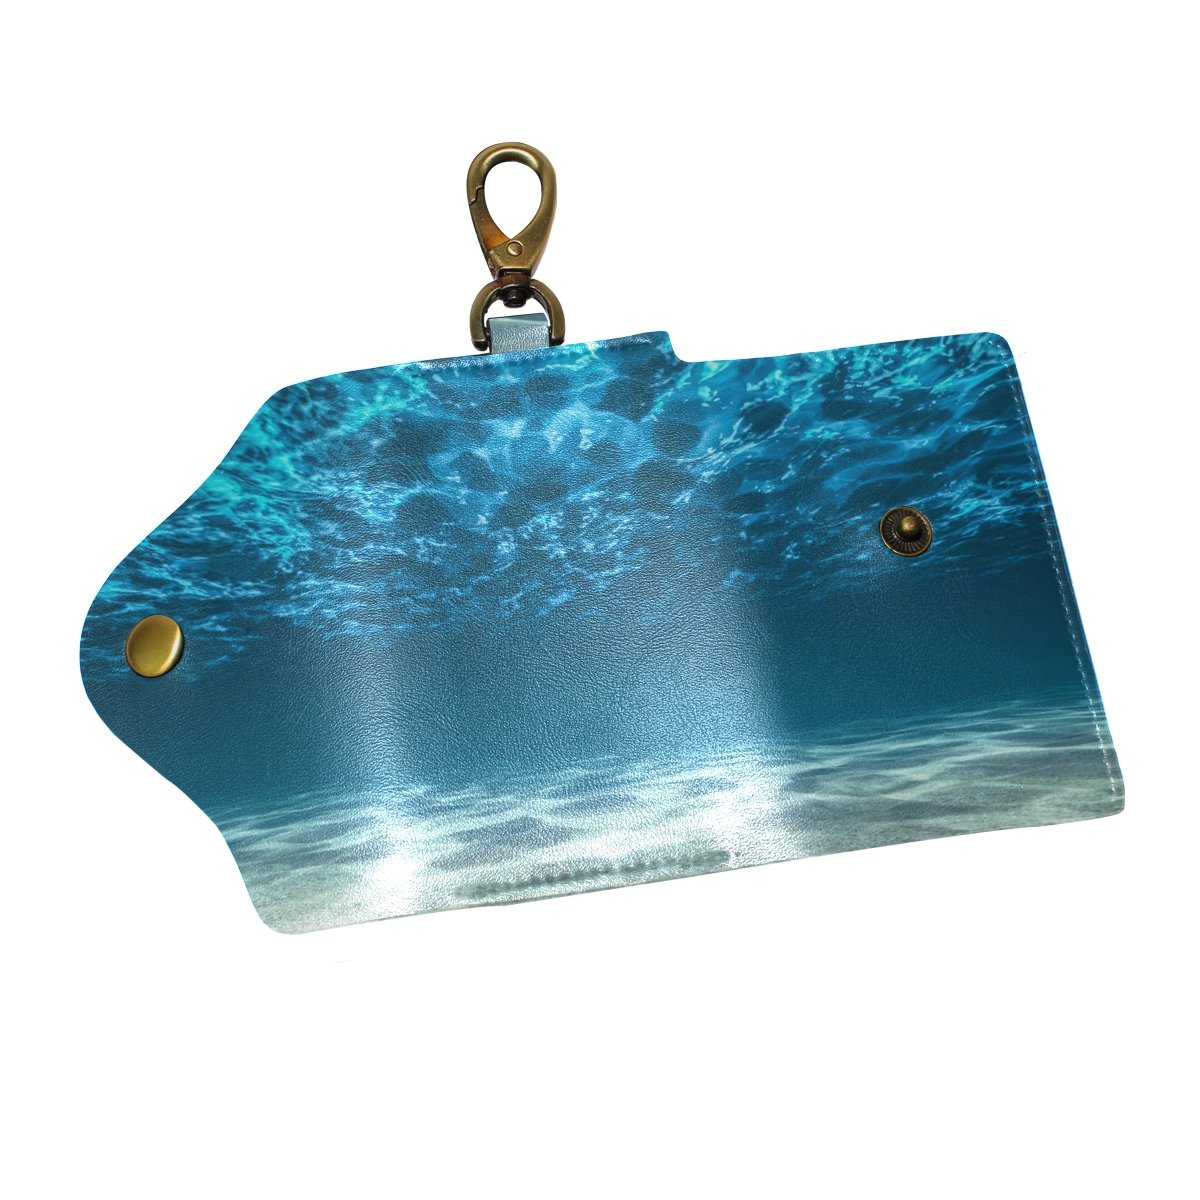 KEAKIA Ocean Bottom And Surface Leather Key Case Wallets Tri-fold Key Holder Keychains with 6 Hooks 2 Slot Snap Closure for Men Women